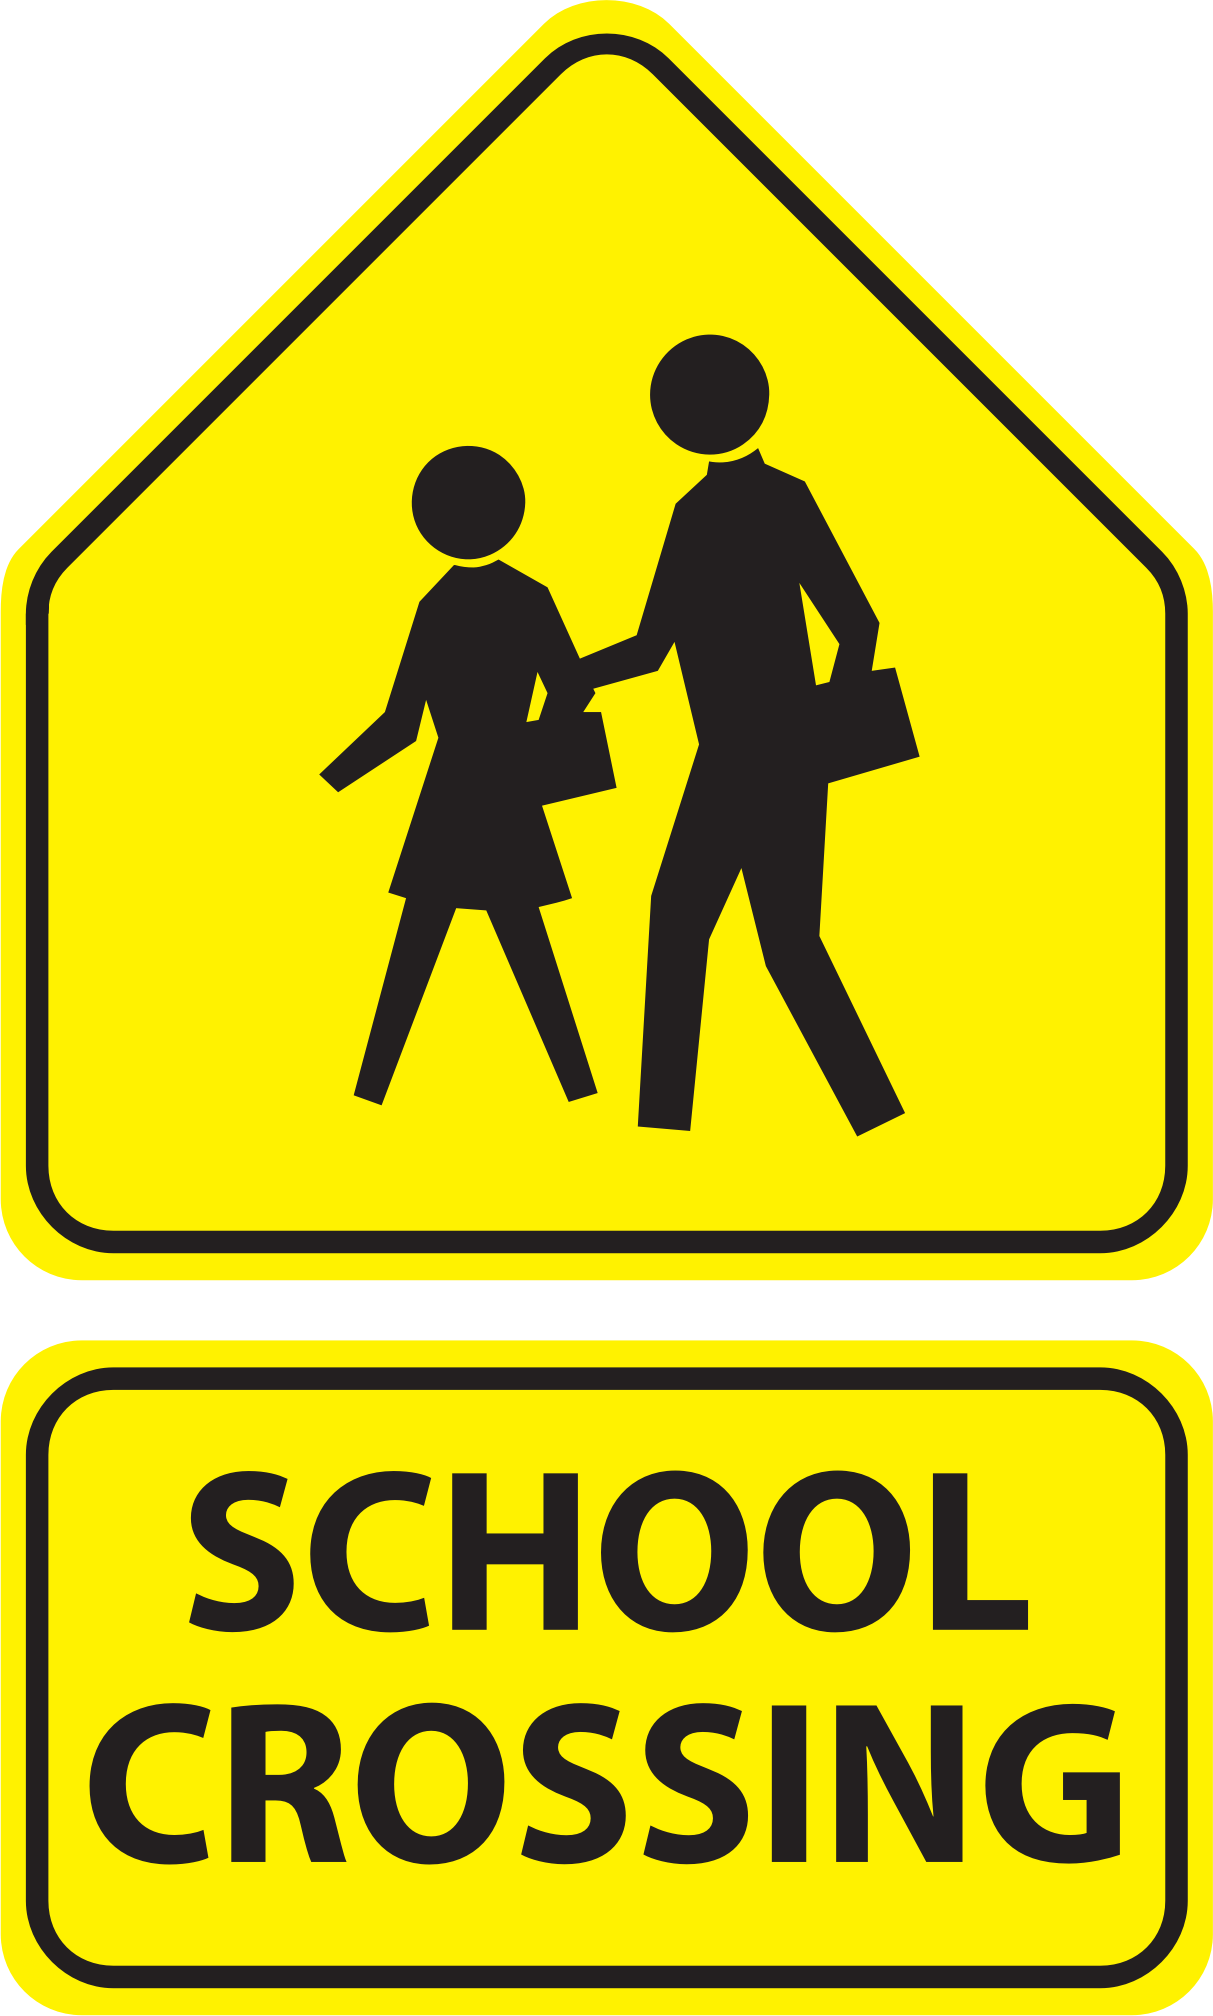 School Crossing Signs by bnsonger47